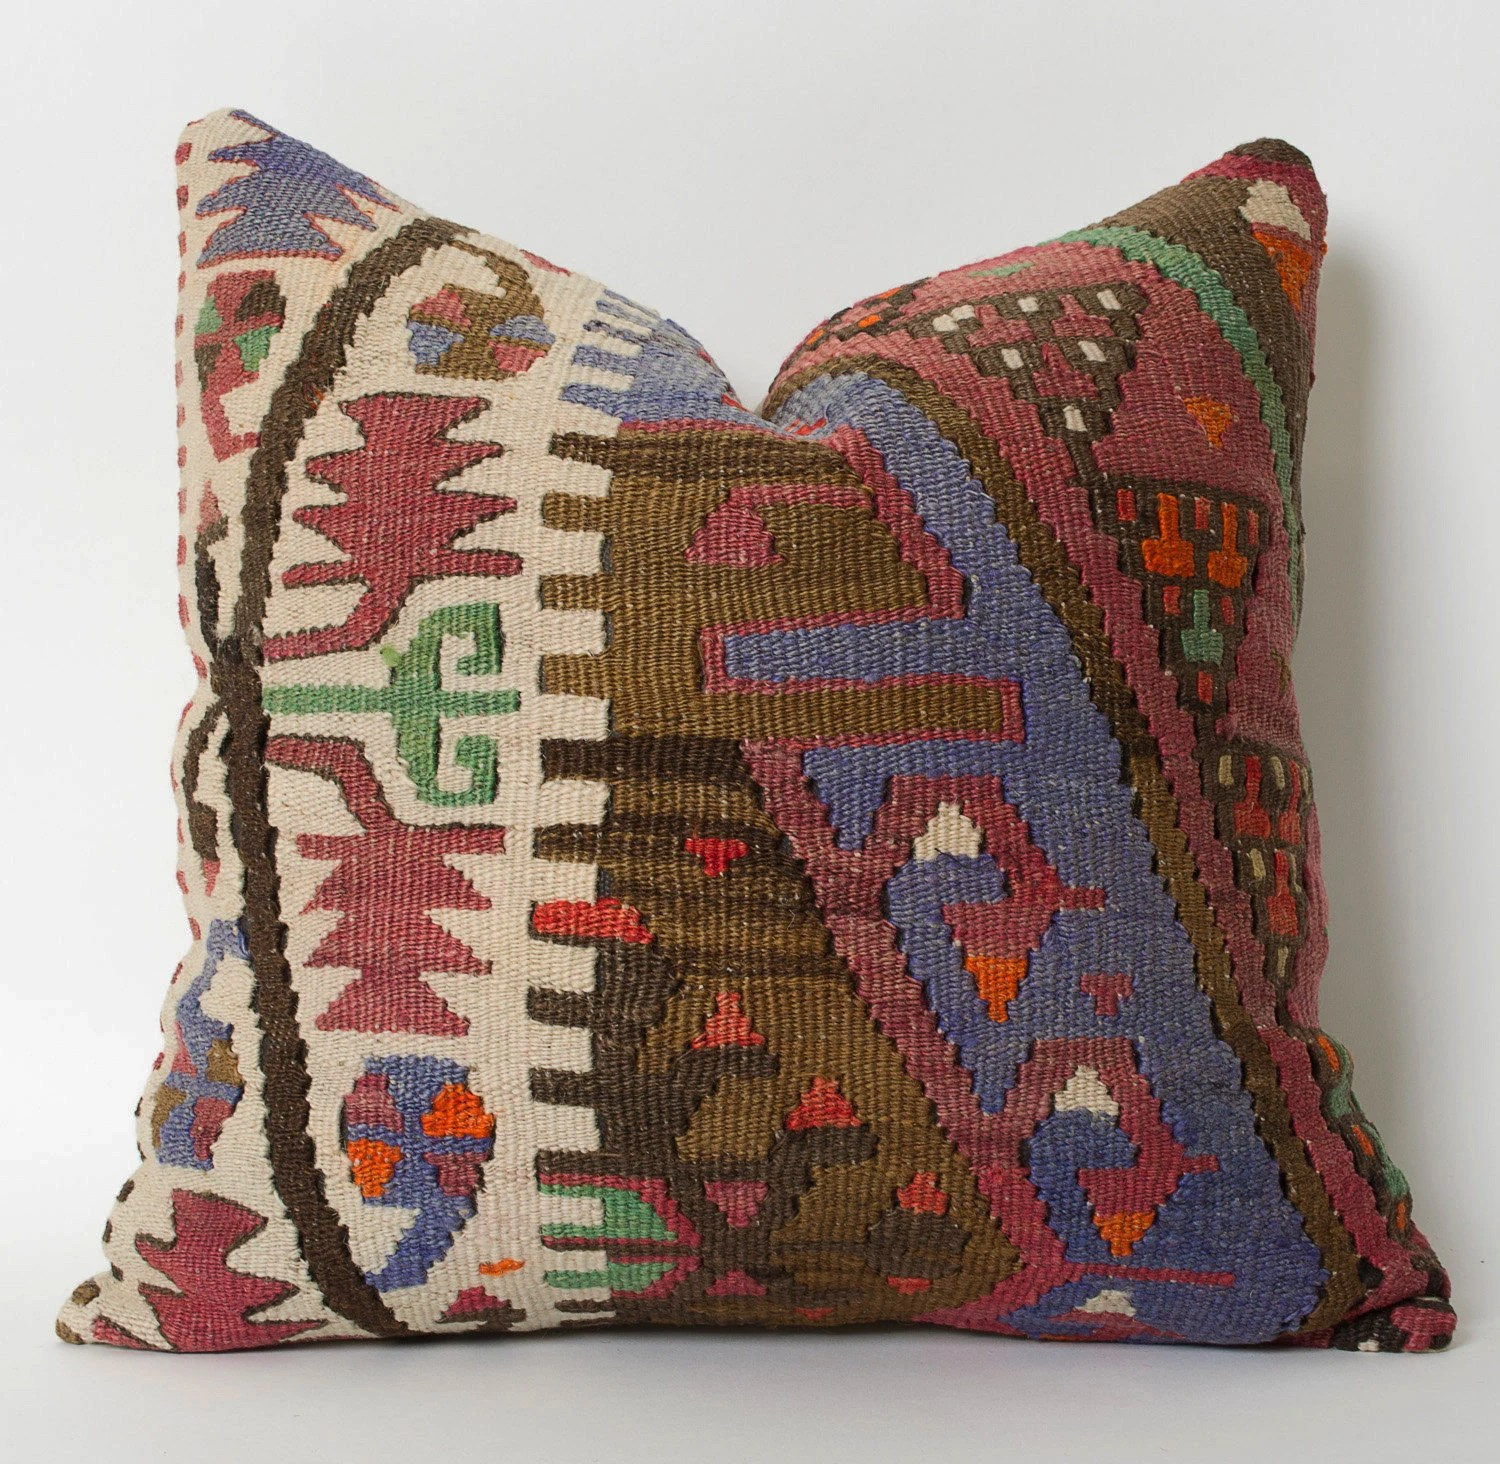 Boho Cushions Australia Ethnic Throw Pillow Kilim Pillow Boho Dorm Decor Kilim Etsy